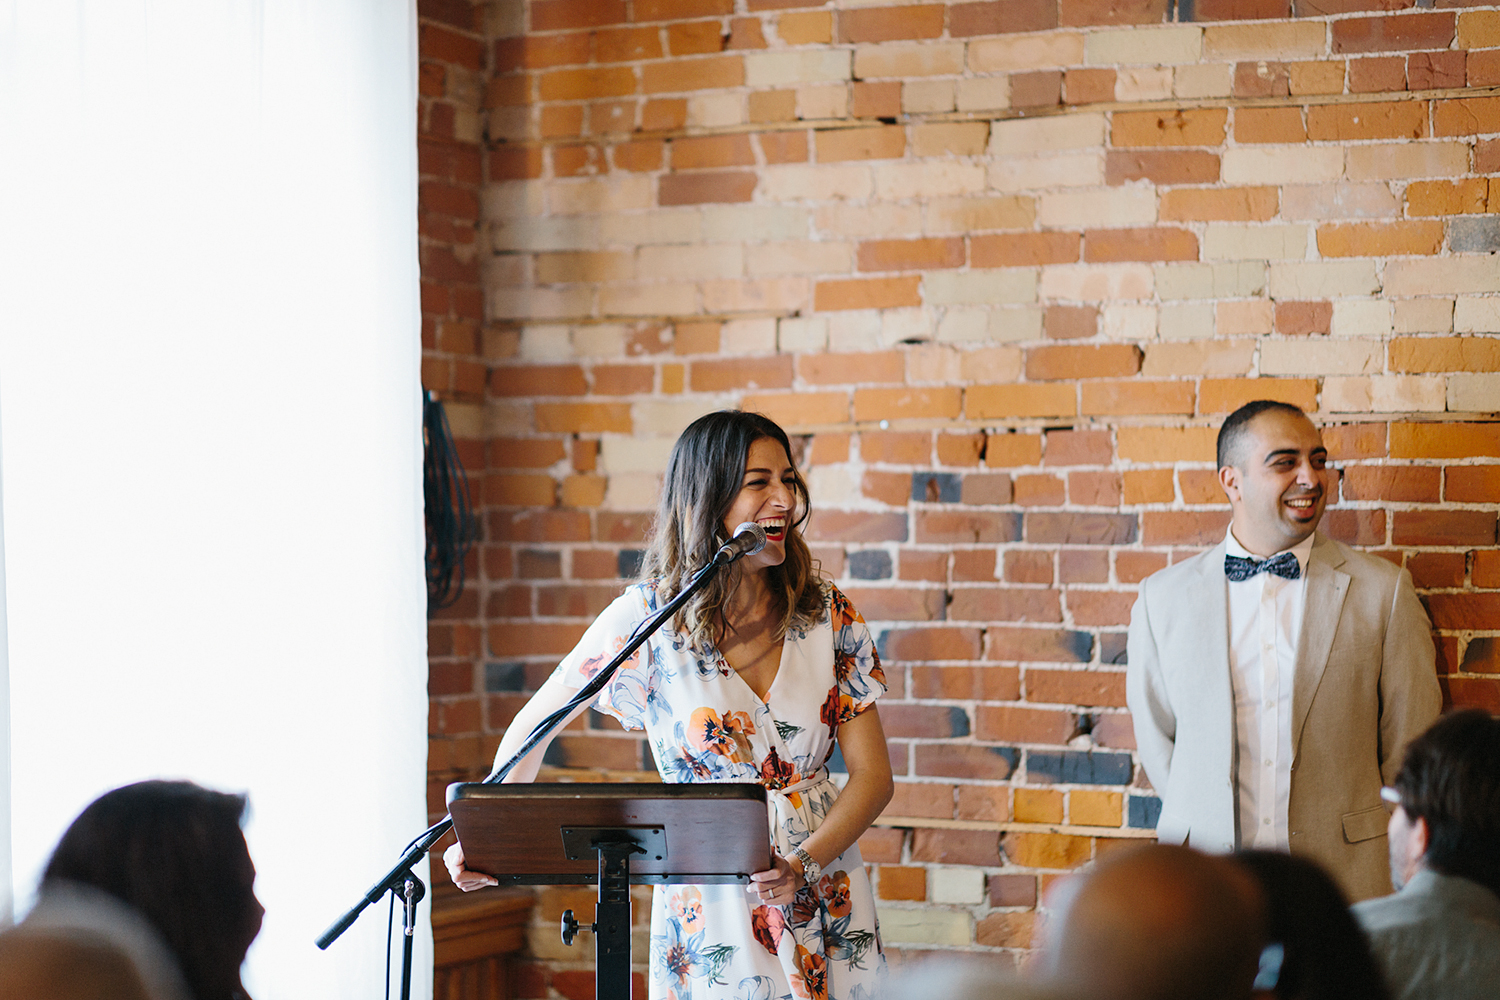 Best-Wedding-Photographers-in-Toronto-Downtown-Urban-Gladstone-Hotel-Venue-Inspiration-Top-Venues-in-Toronto-boutique-hotel-candid-documentary-brunch-wedding-reception-speeches-cute.jpg